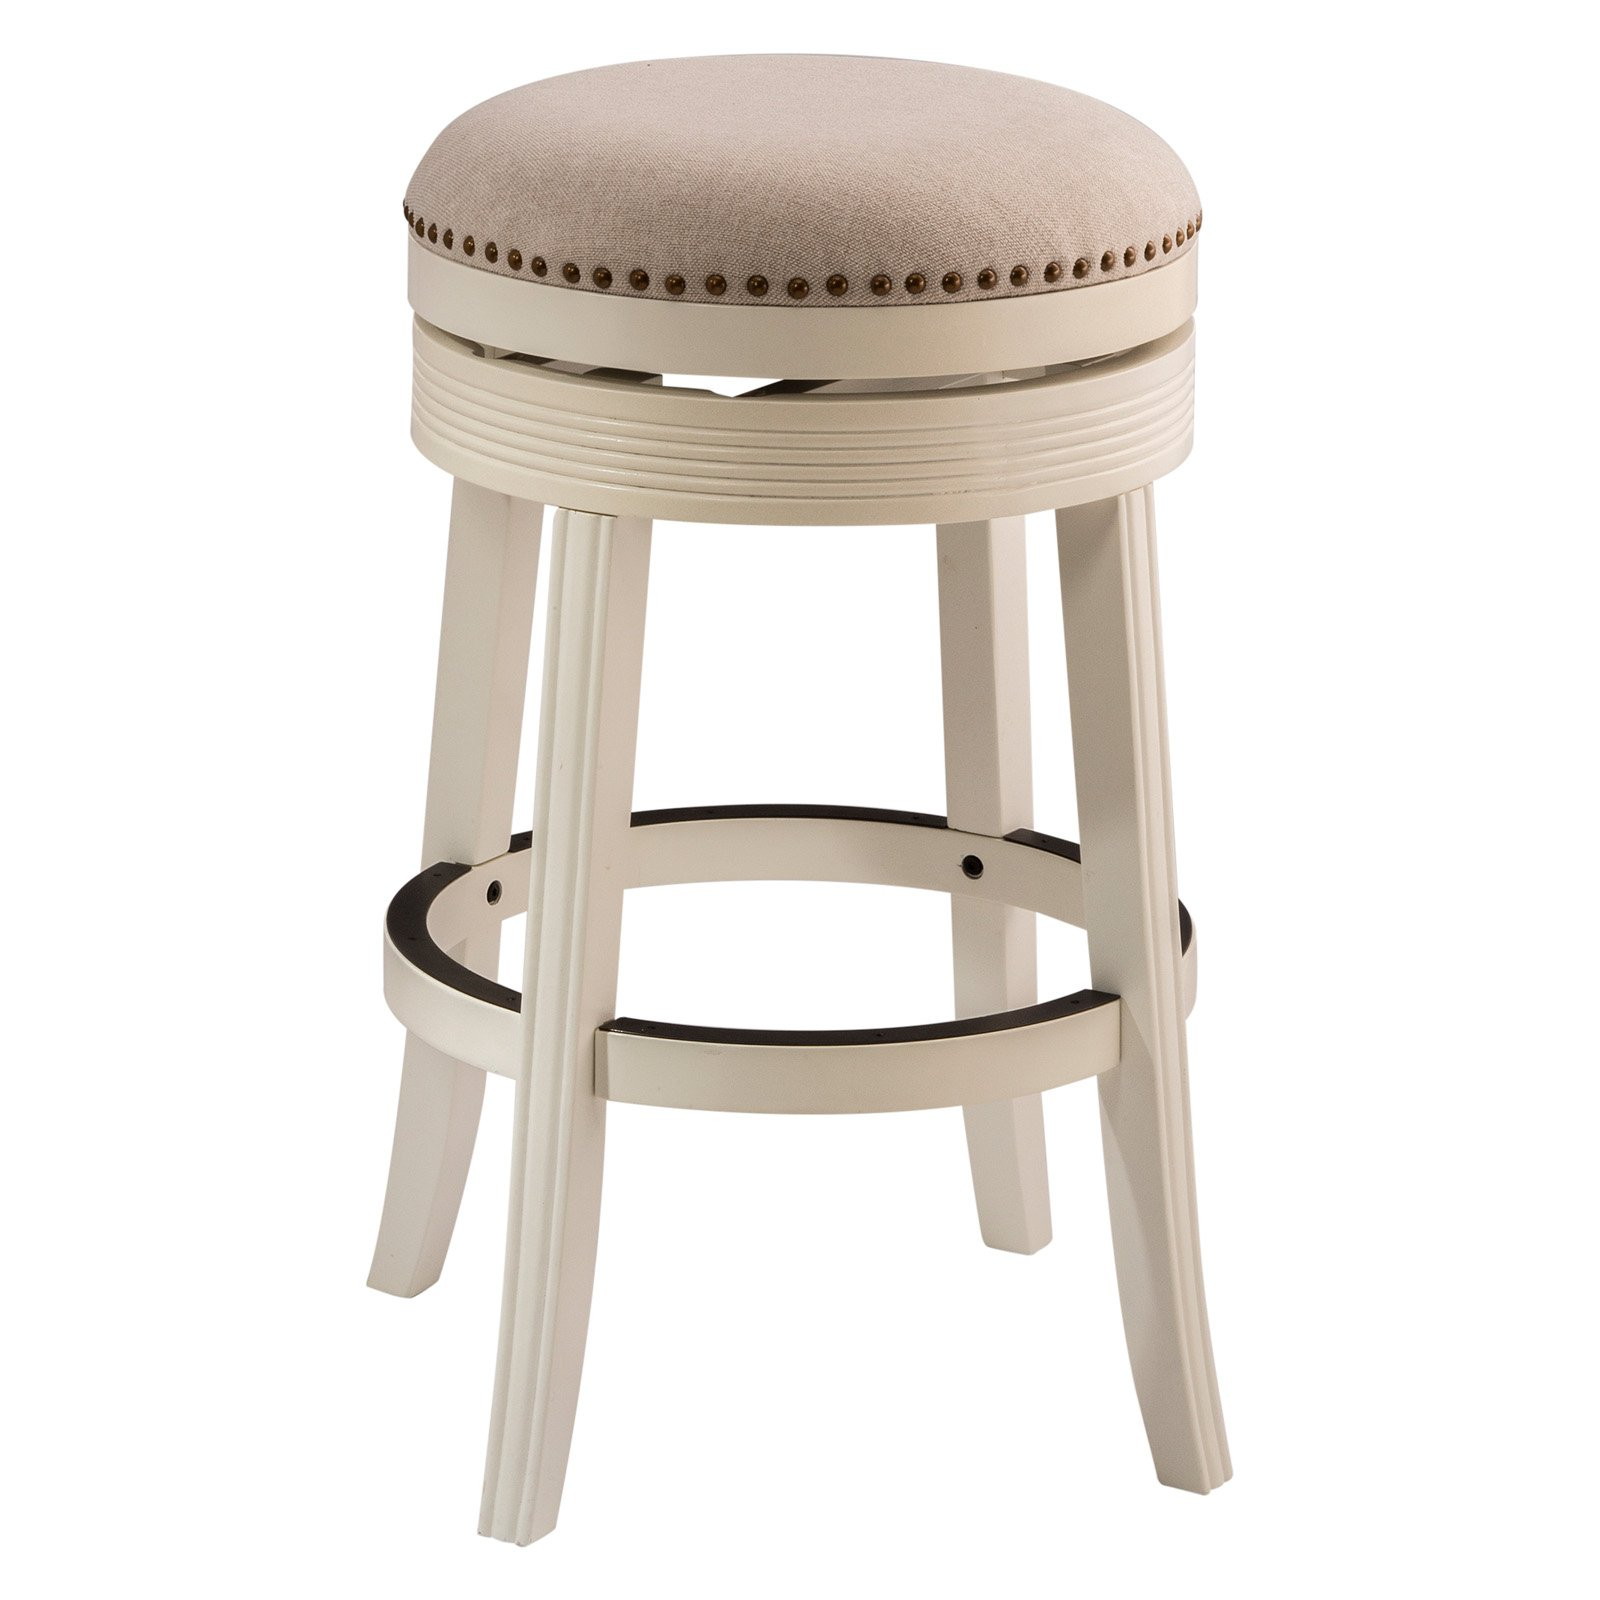 Hillsdale furniture tillman backless swivel bar stool walmart com